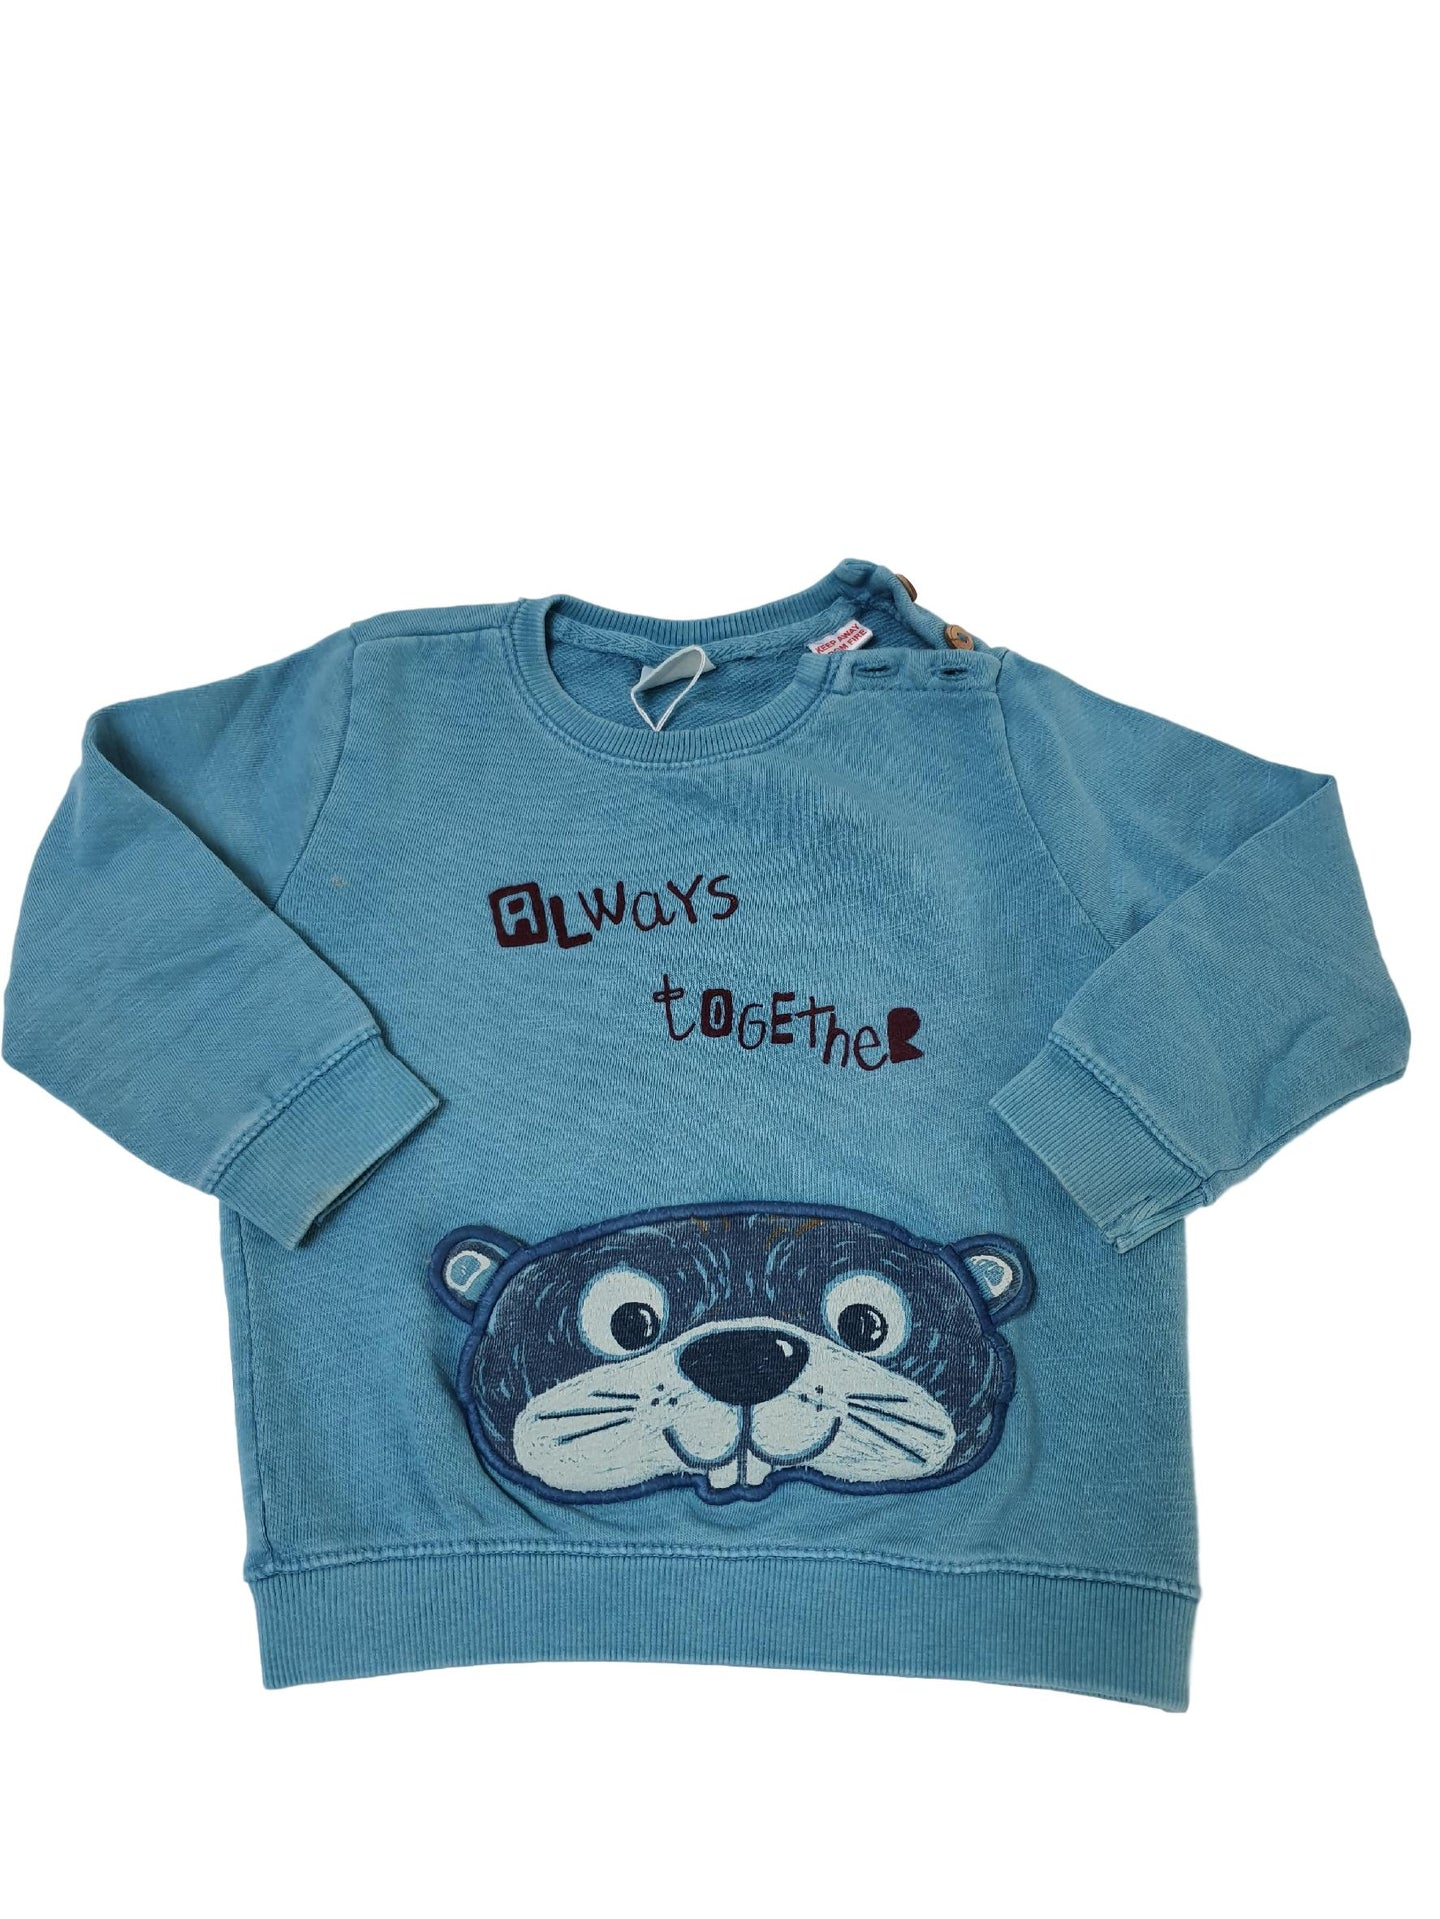 ZARA boy sweatshirt 2yo